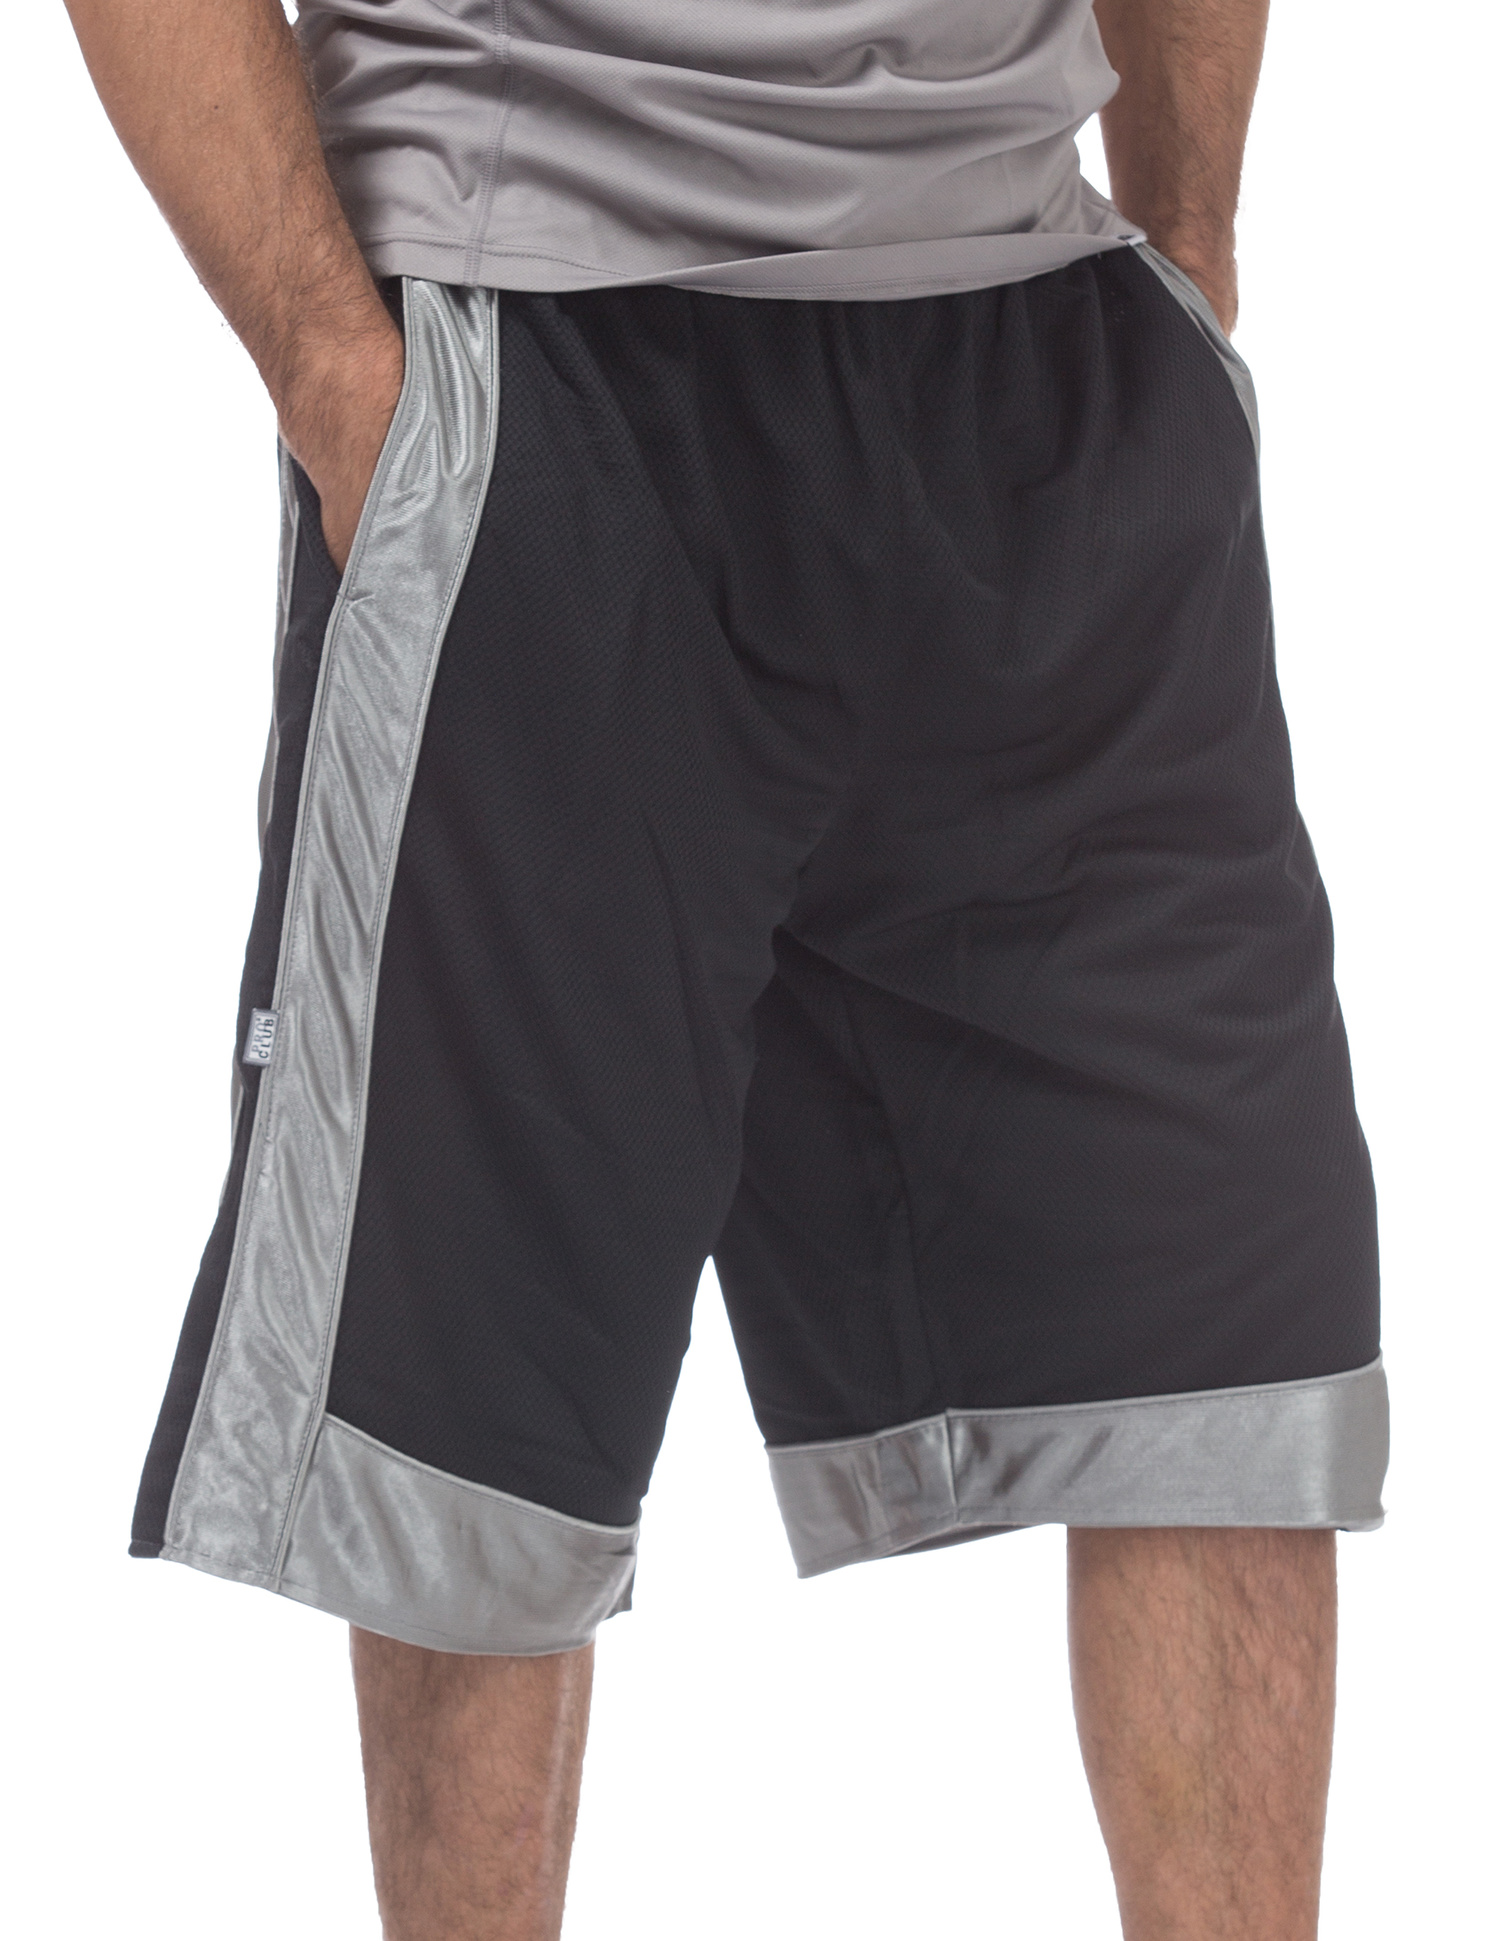 161 Black Gray Heavyweight Mesh Basketball Shorts